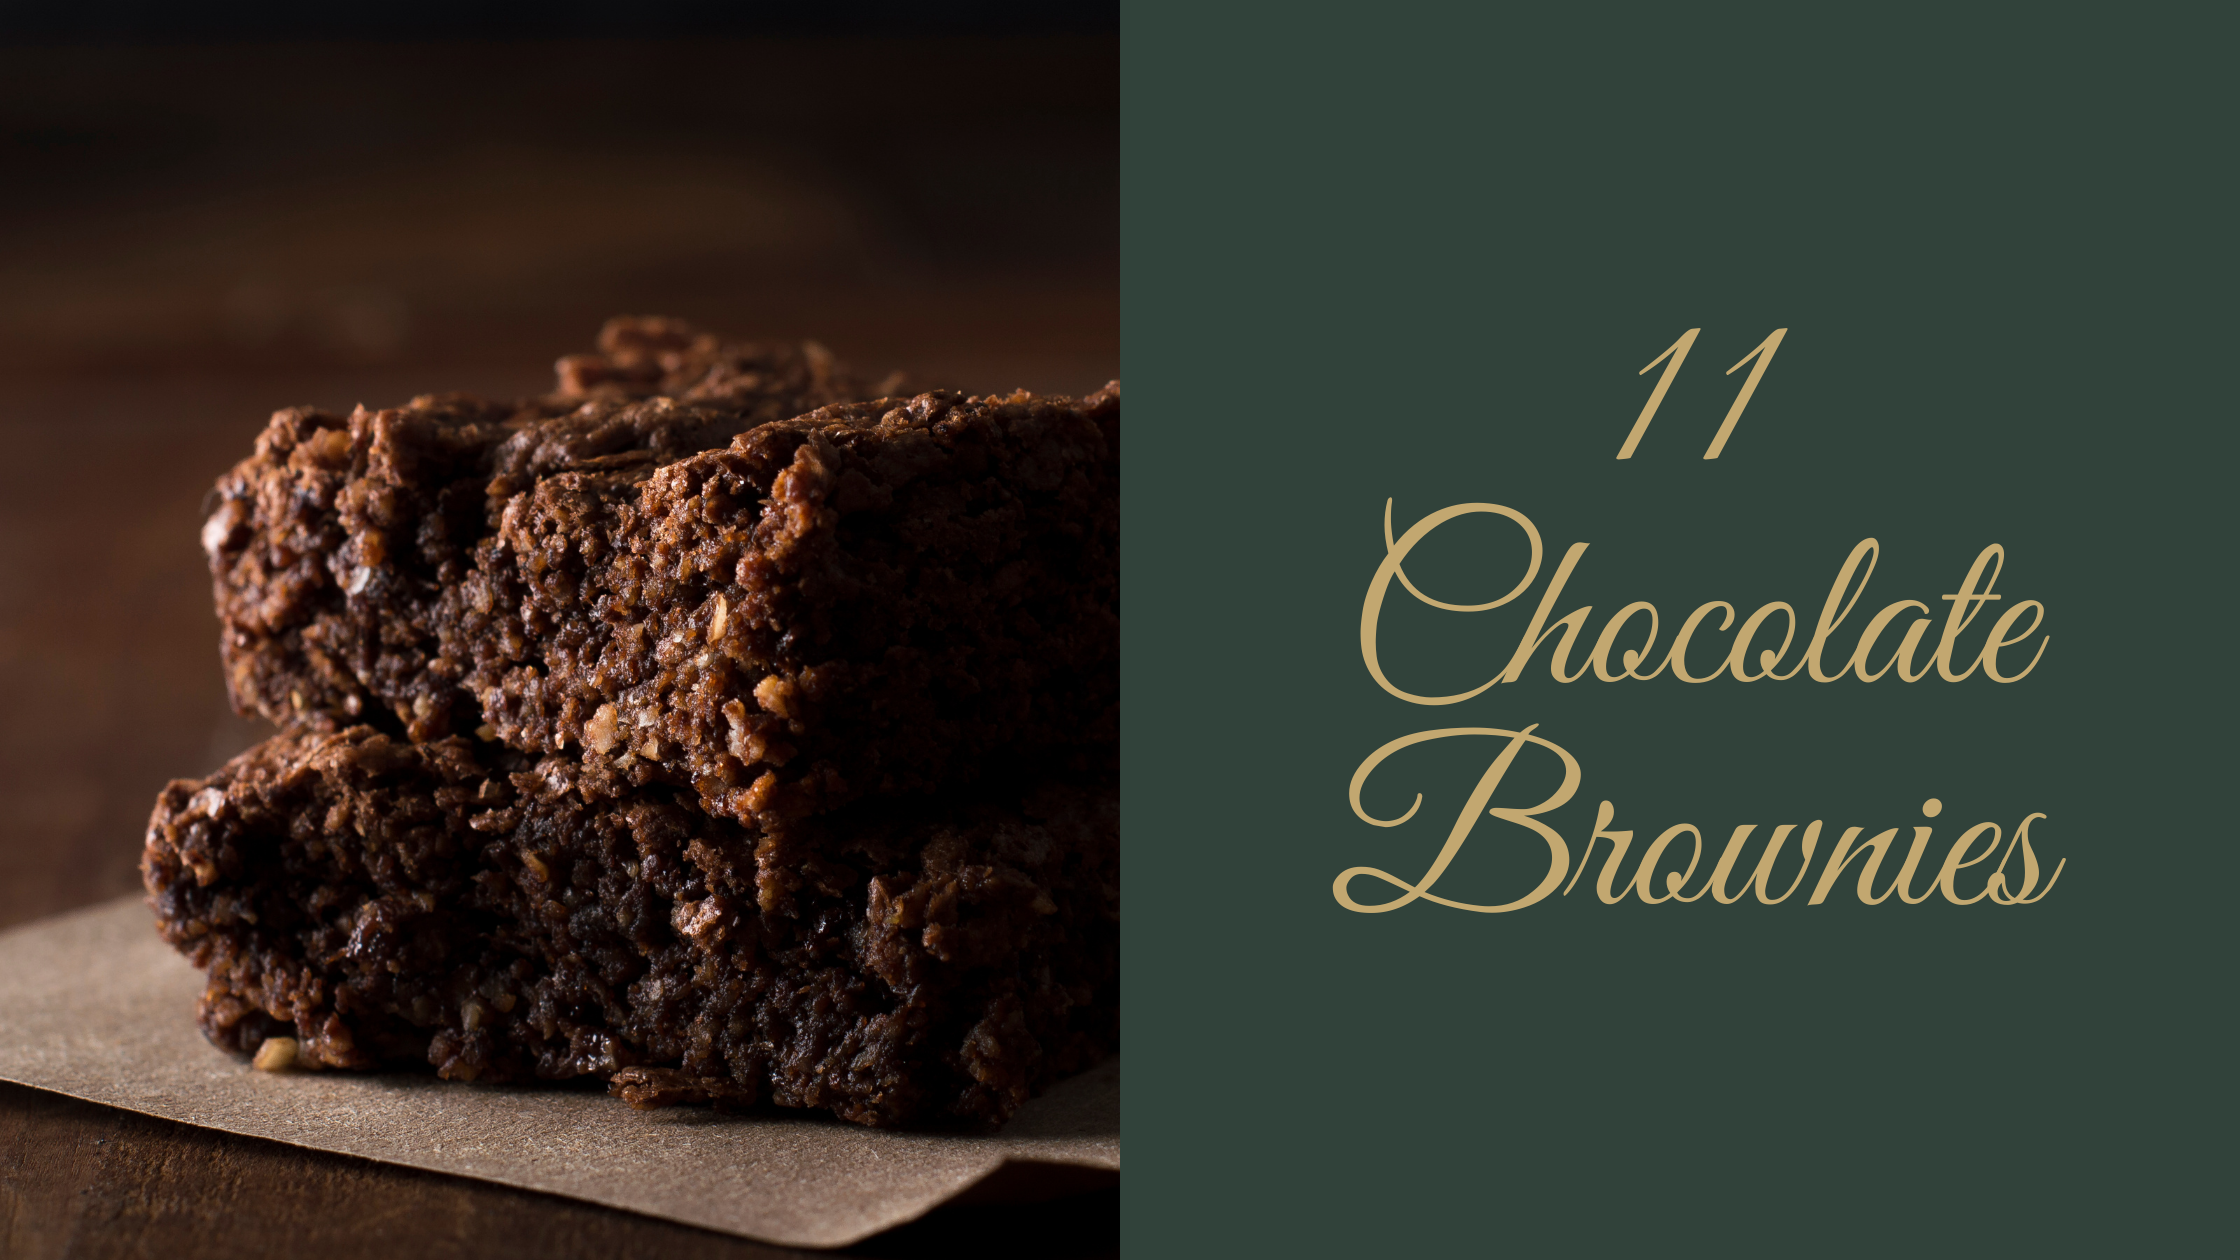 11 Chocolate Brownies